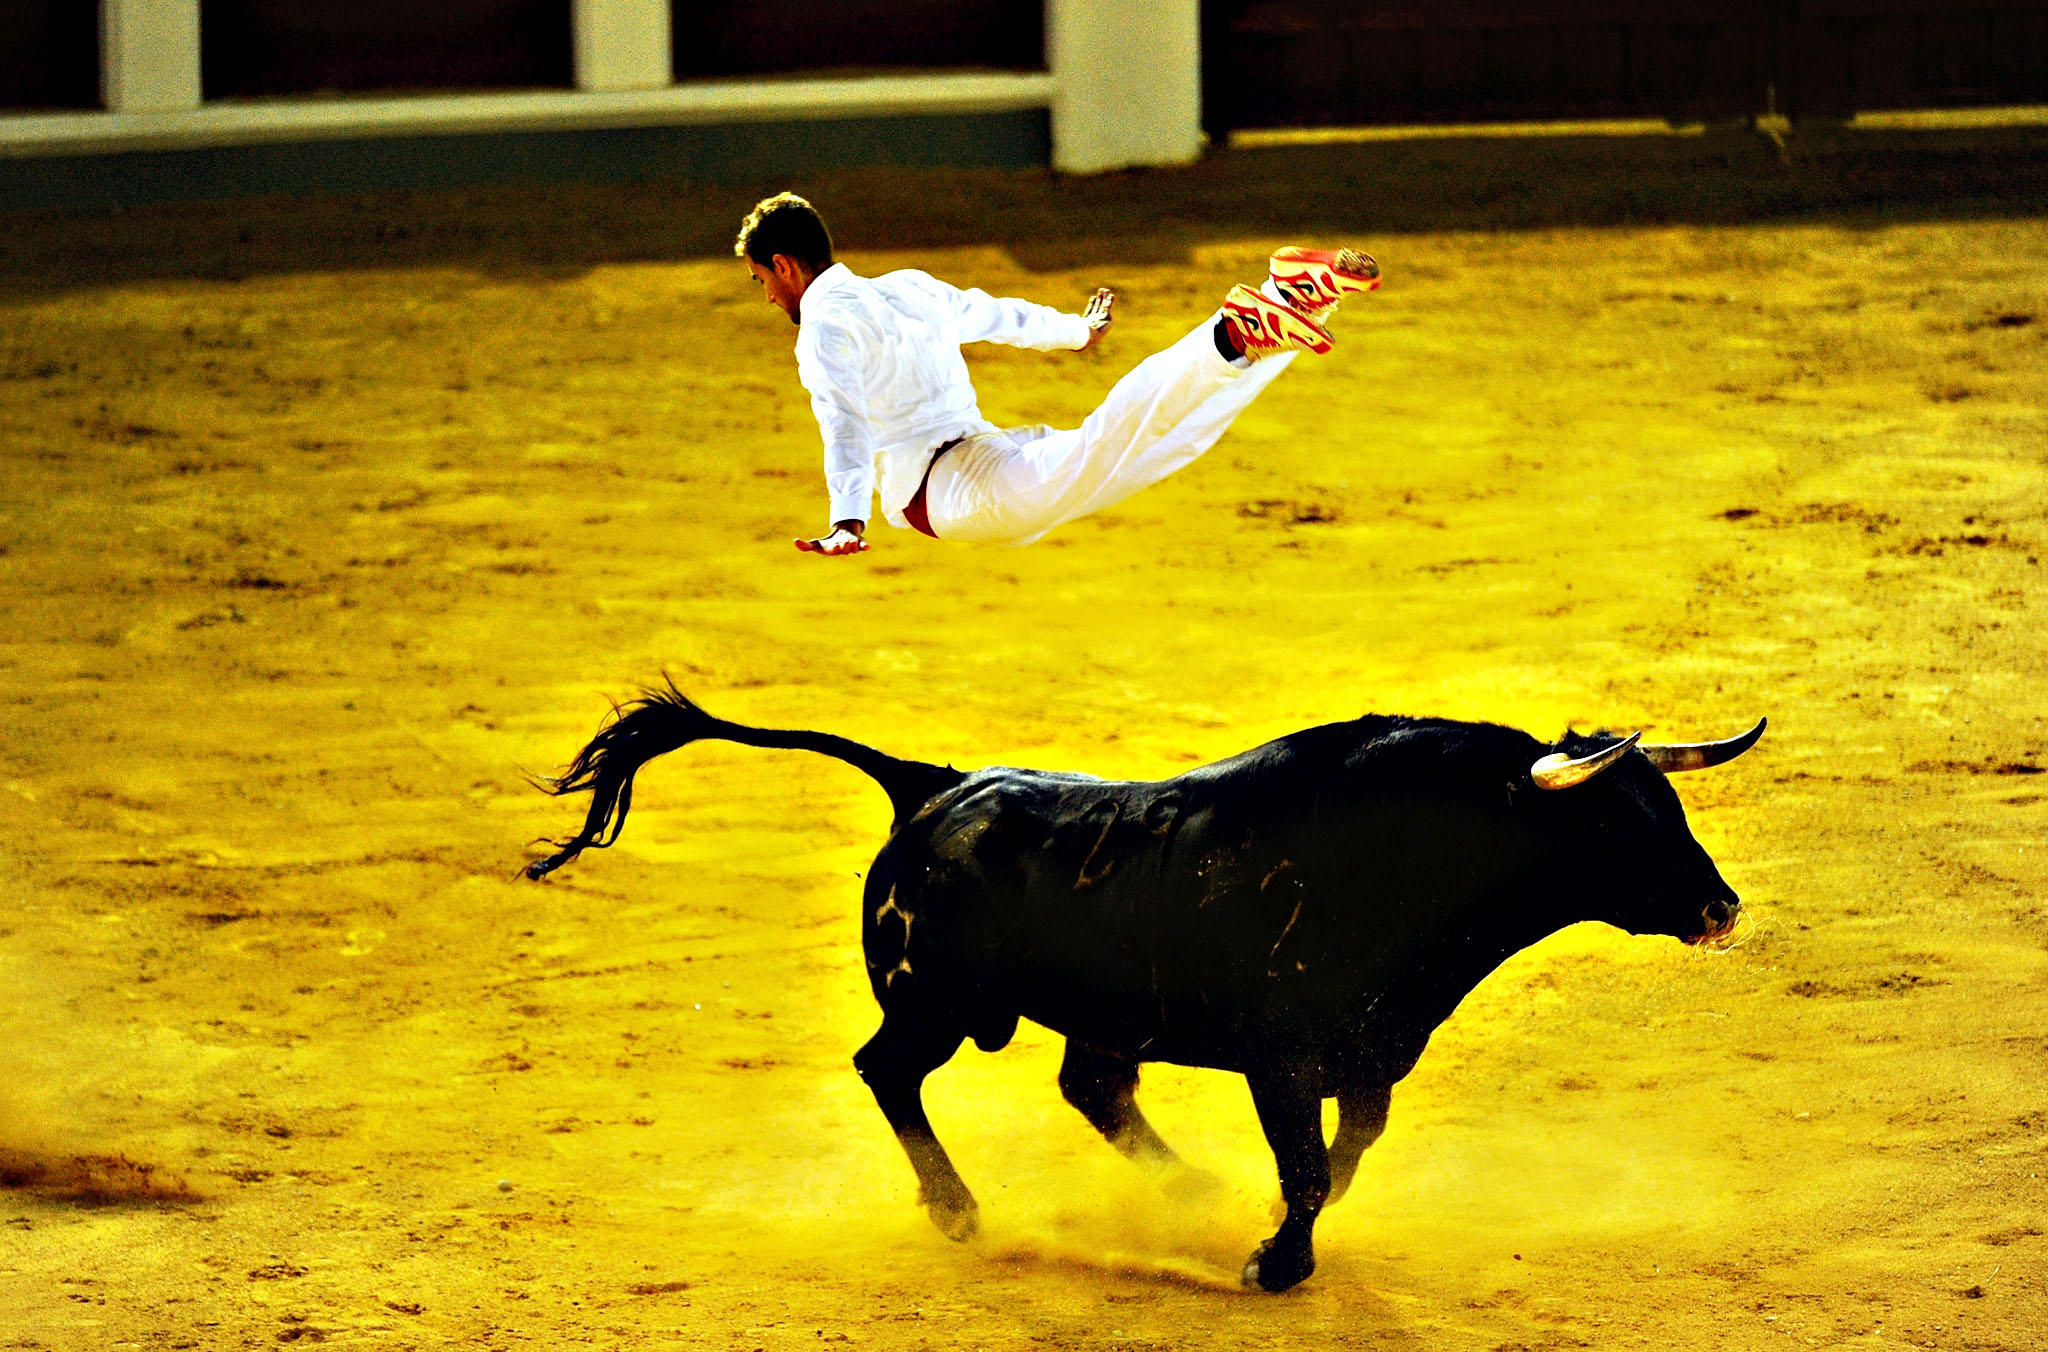 Fabien Napias of the French Recortadores company Passion Saltador leaps over a charging bull at the end of the Liga de Corte Puro finals at the Plaza de Toros in Valladolid, Spain. The art consists of leaping, diving and somersaulting over charging bulls